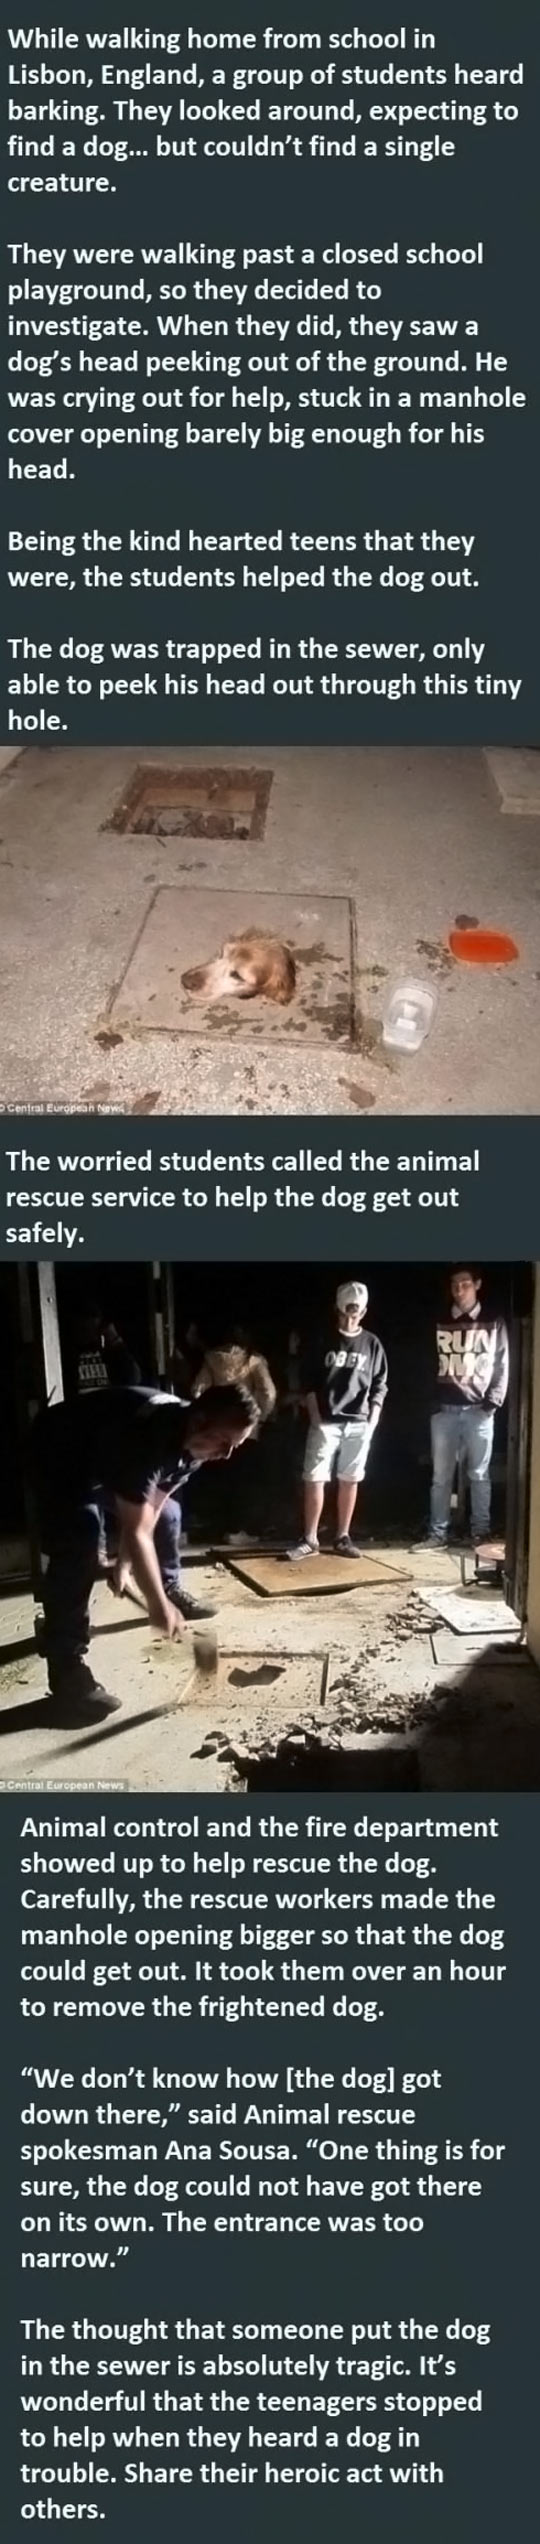 cool-dog-story-students-help